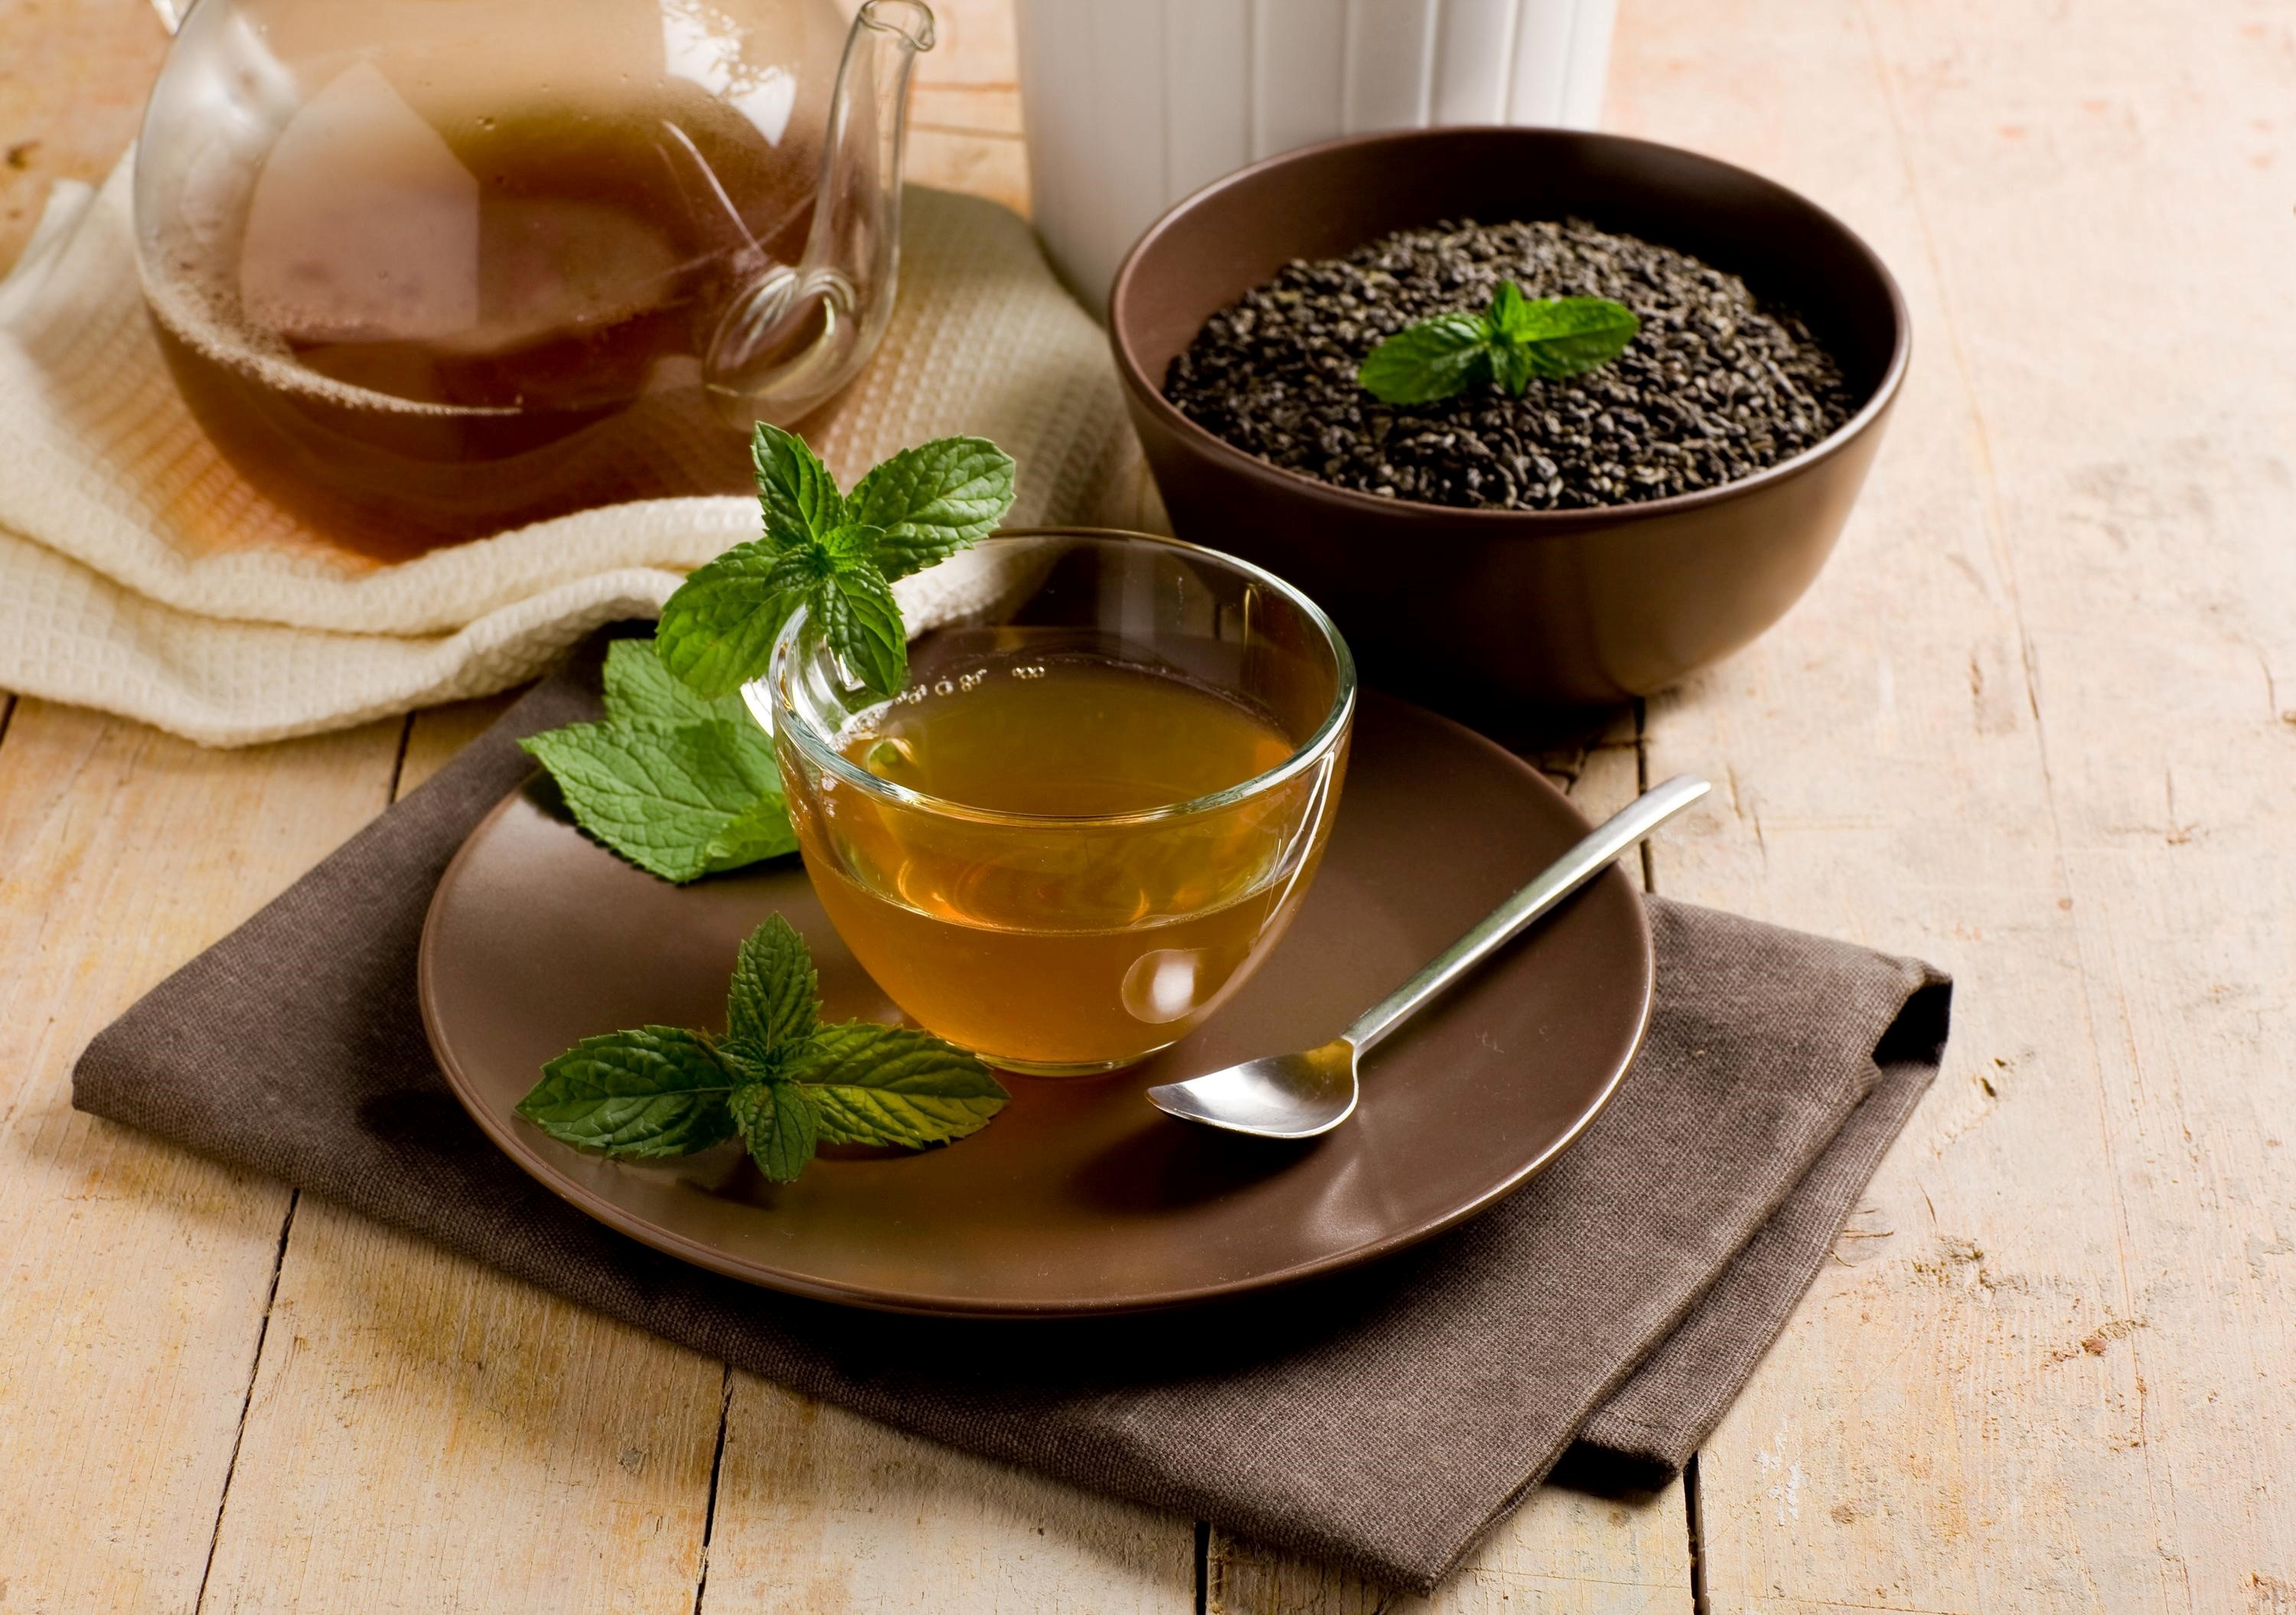 Cute Mint Green Wallpaper Hot Tea And Coffee Beans Beautiful Flavours